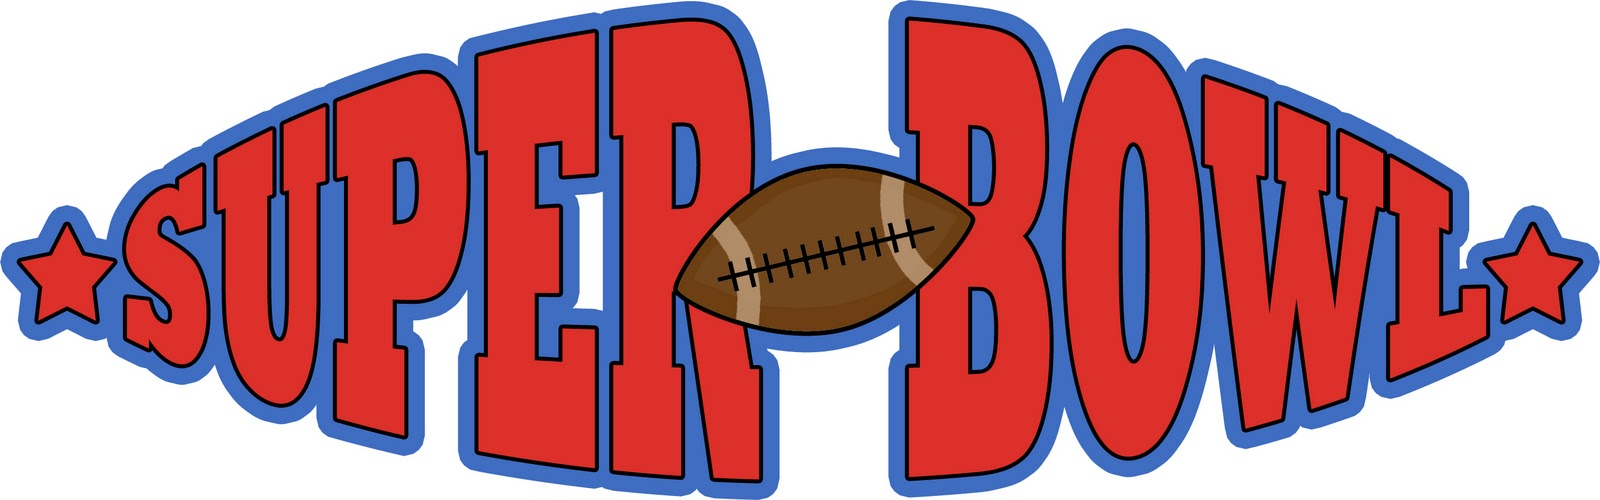 ... Clipart Super Bowl Football Banner: Colorful Banner with a football and stars Bright red text